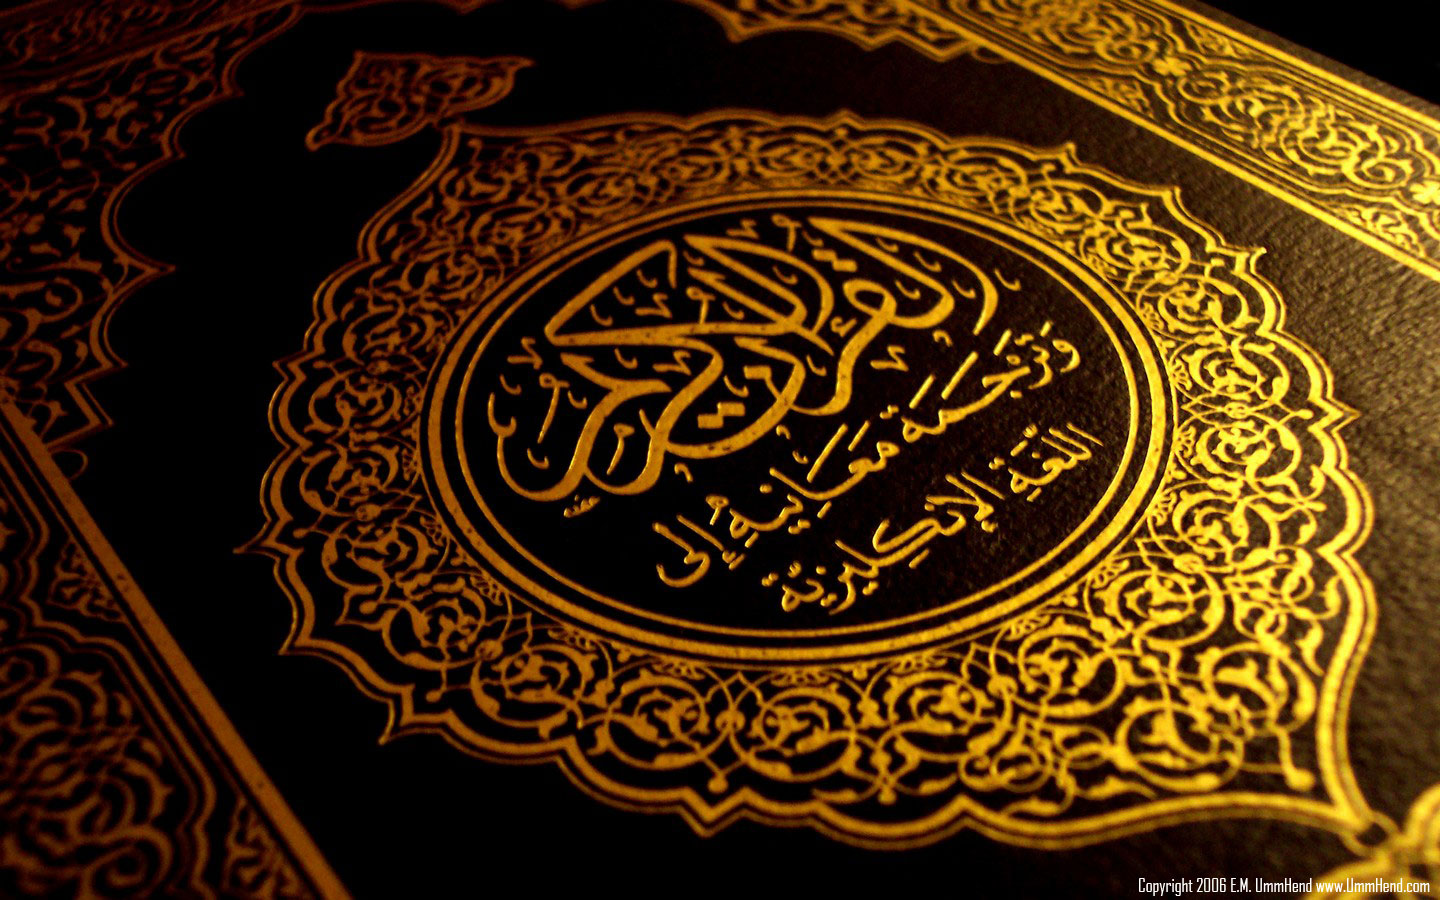 Orientalist writers generally try to find some fault with the very basis of the Muslim faith: the Qur'an and Prophet Muhammad. Thus, they come up with many theories about both. They claim, for example, that the Qur'an was not a revelation from Allah but simply written by Prophet Muhammad.